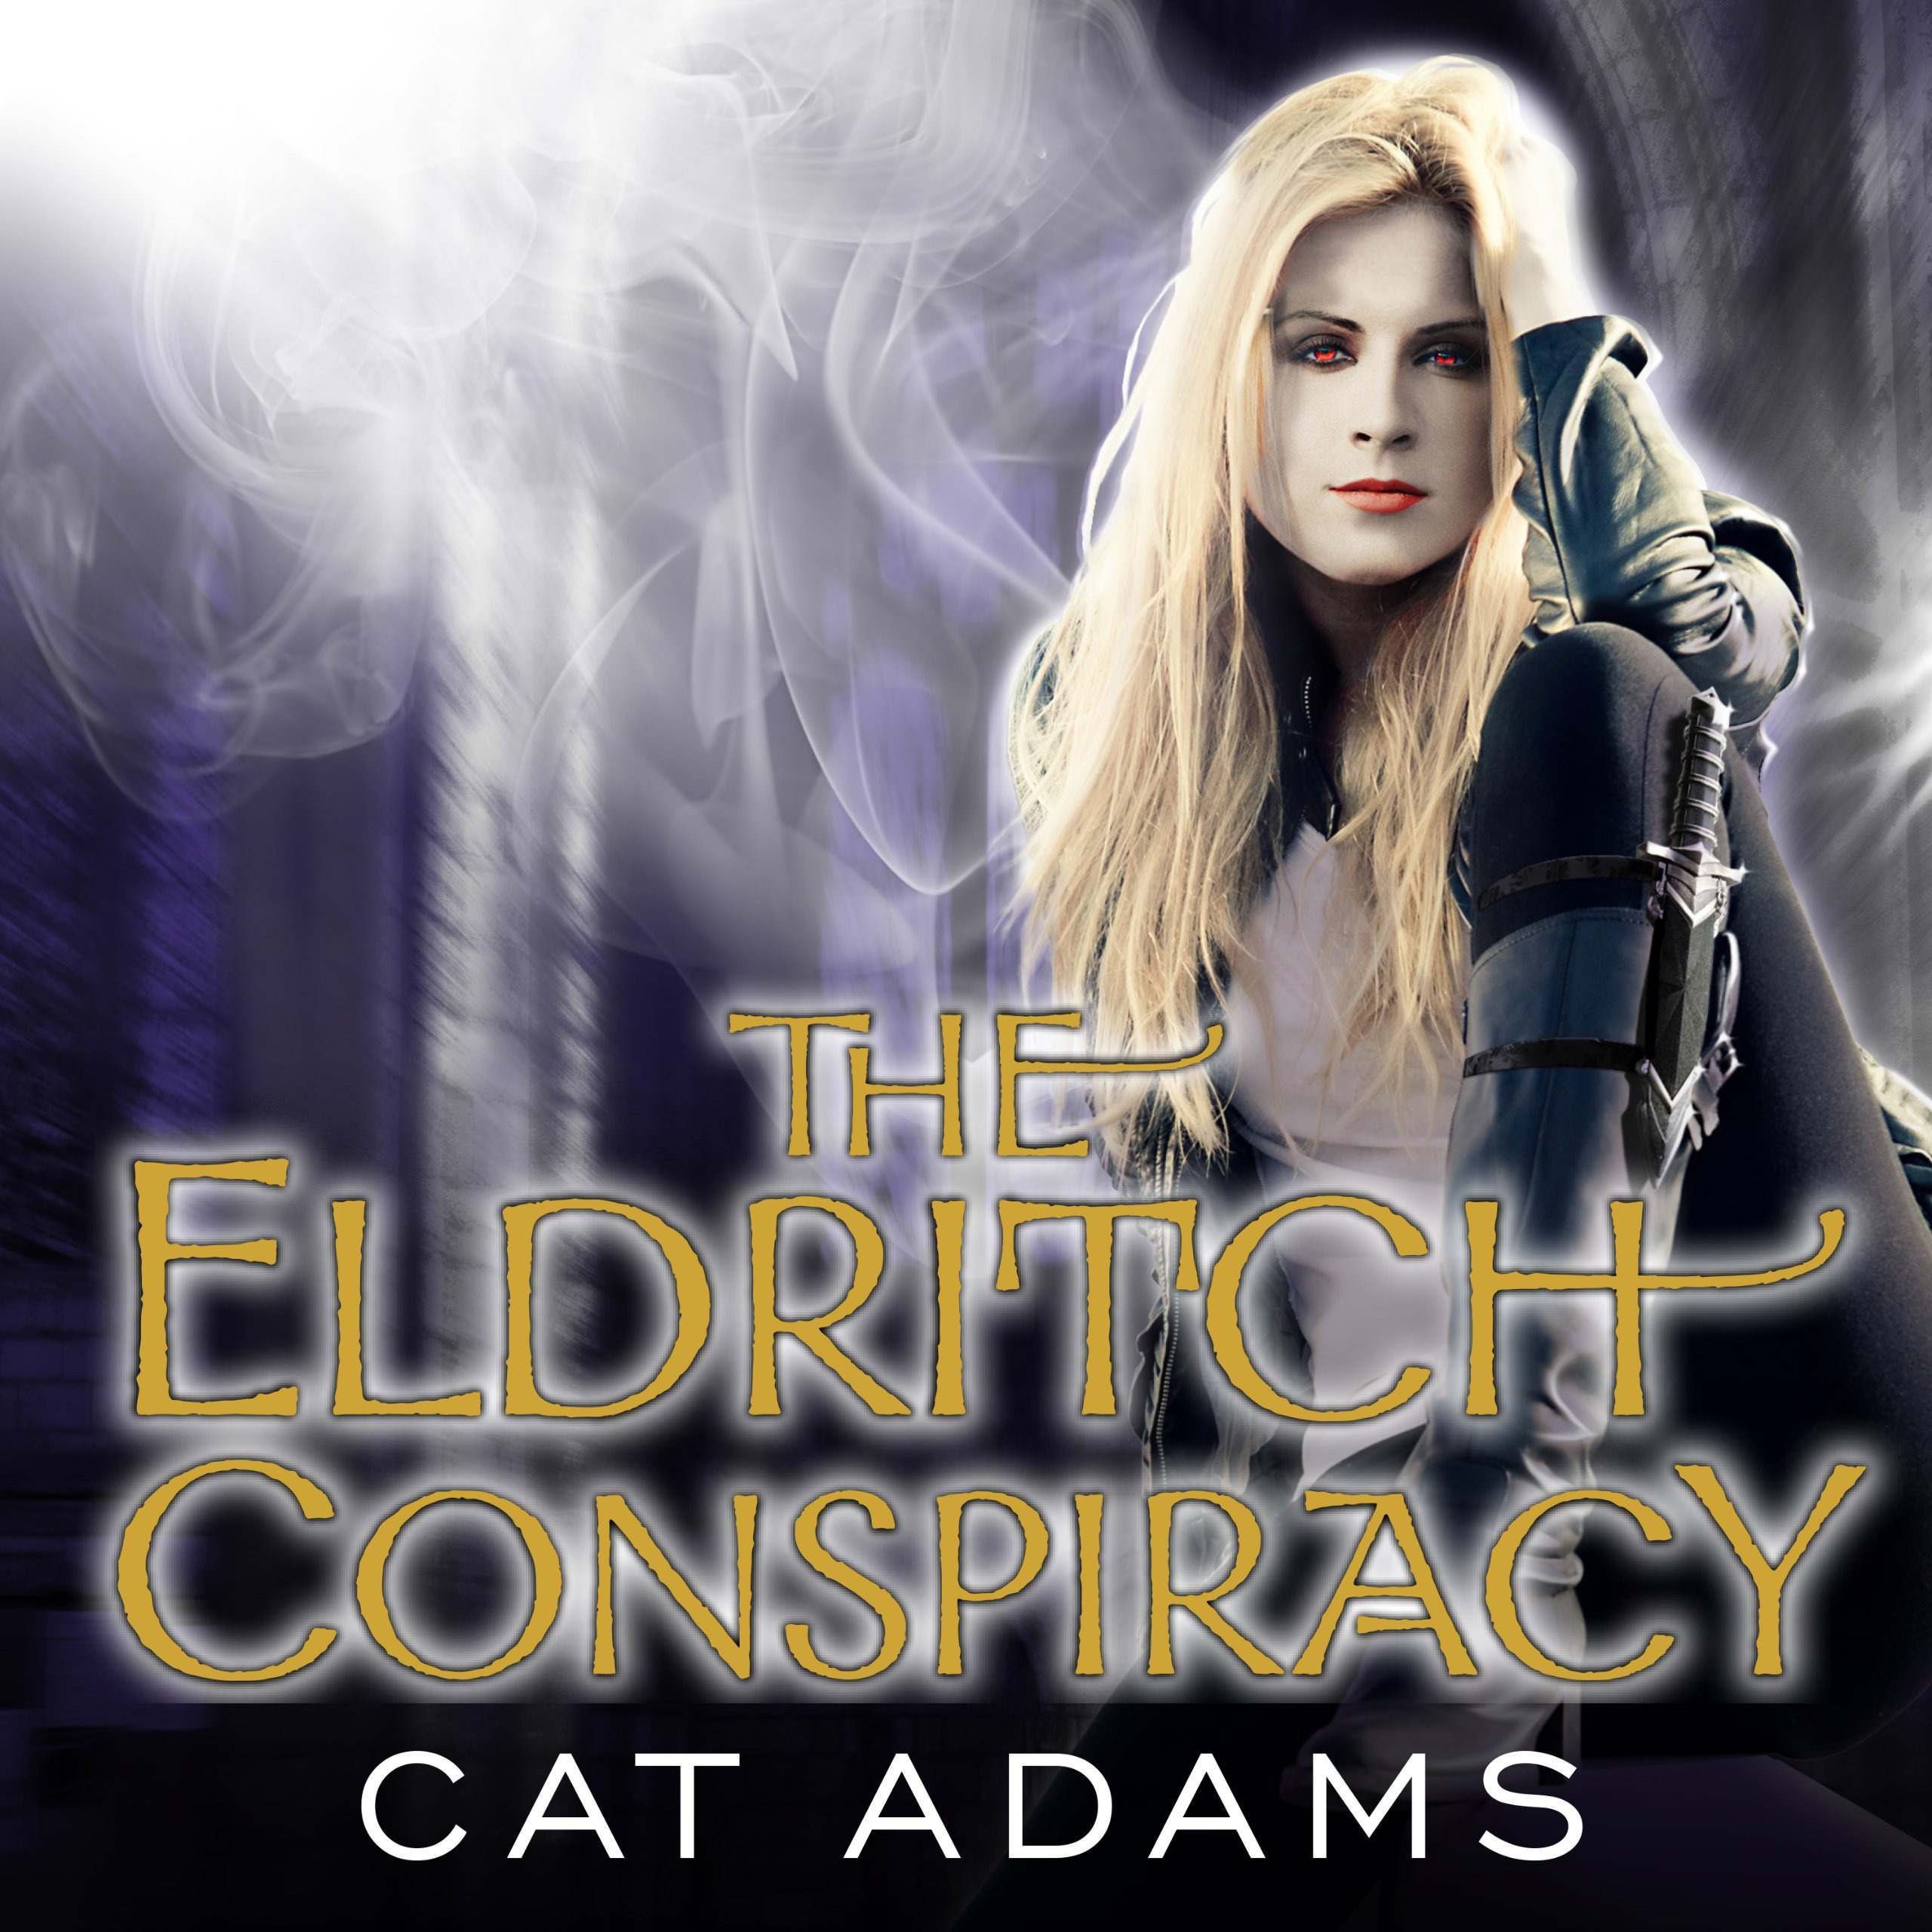 Printable The Eldritch Conspiracy Audiobook Cover Art